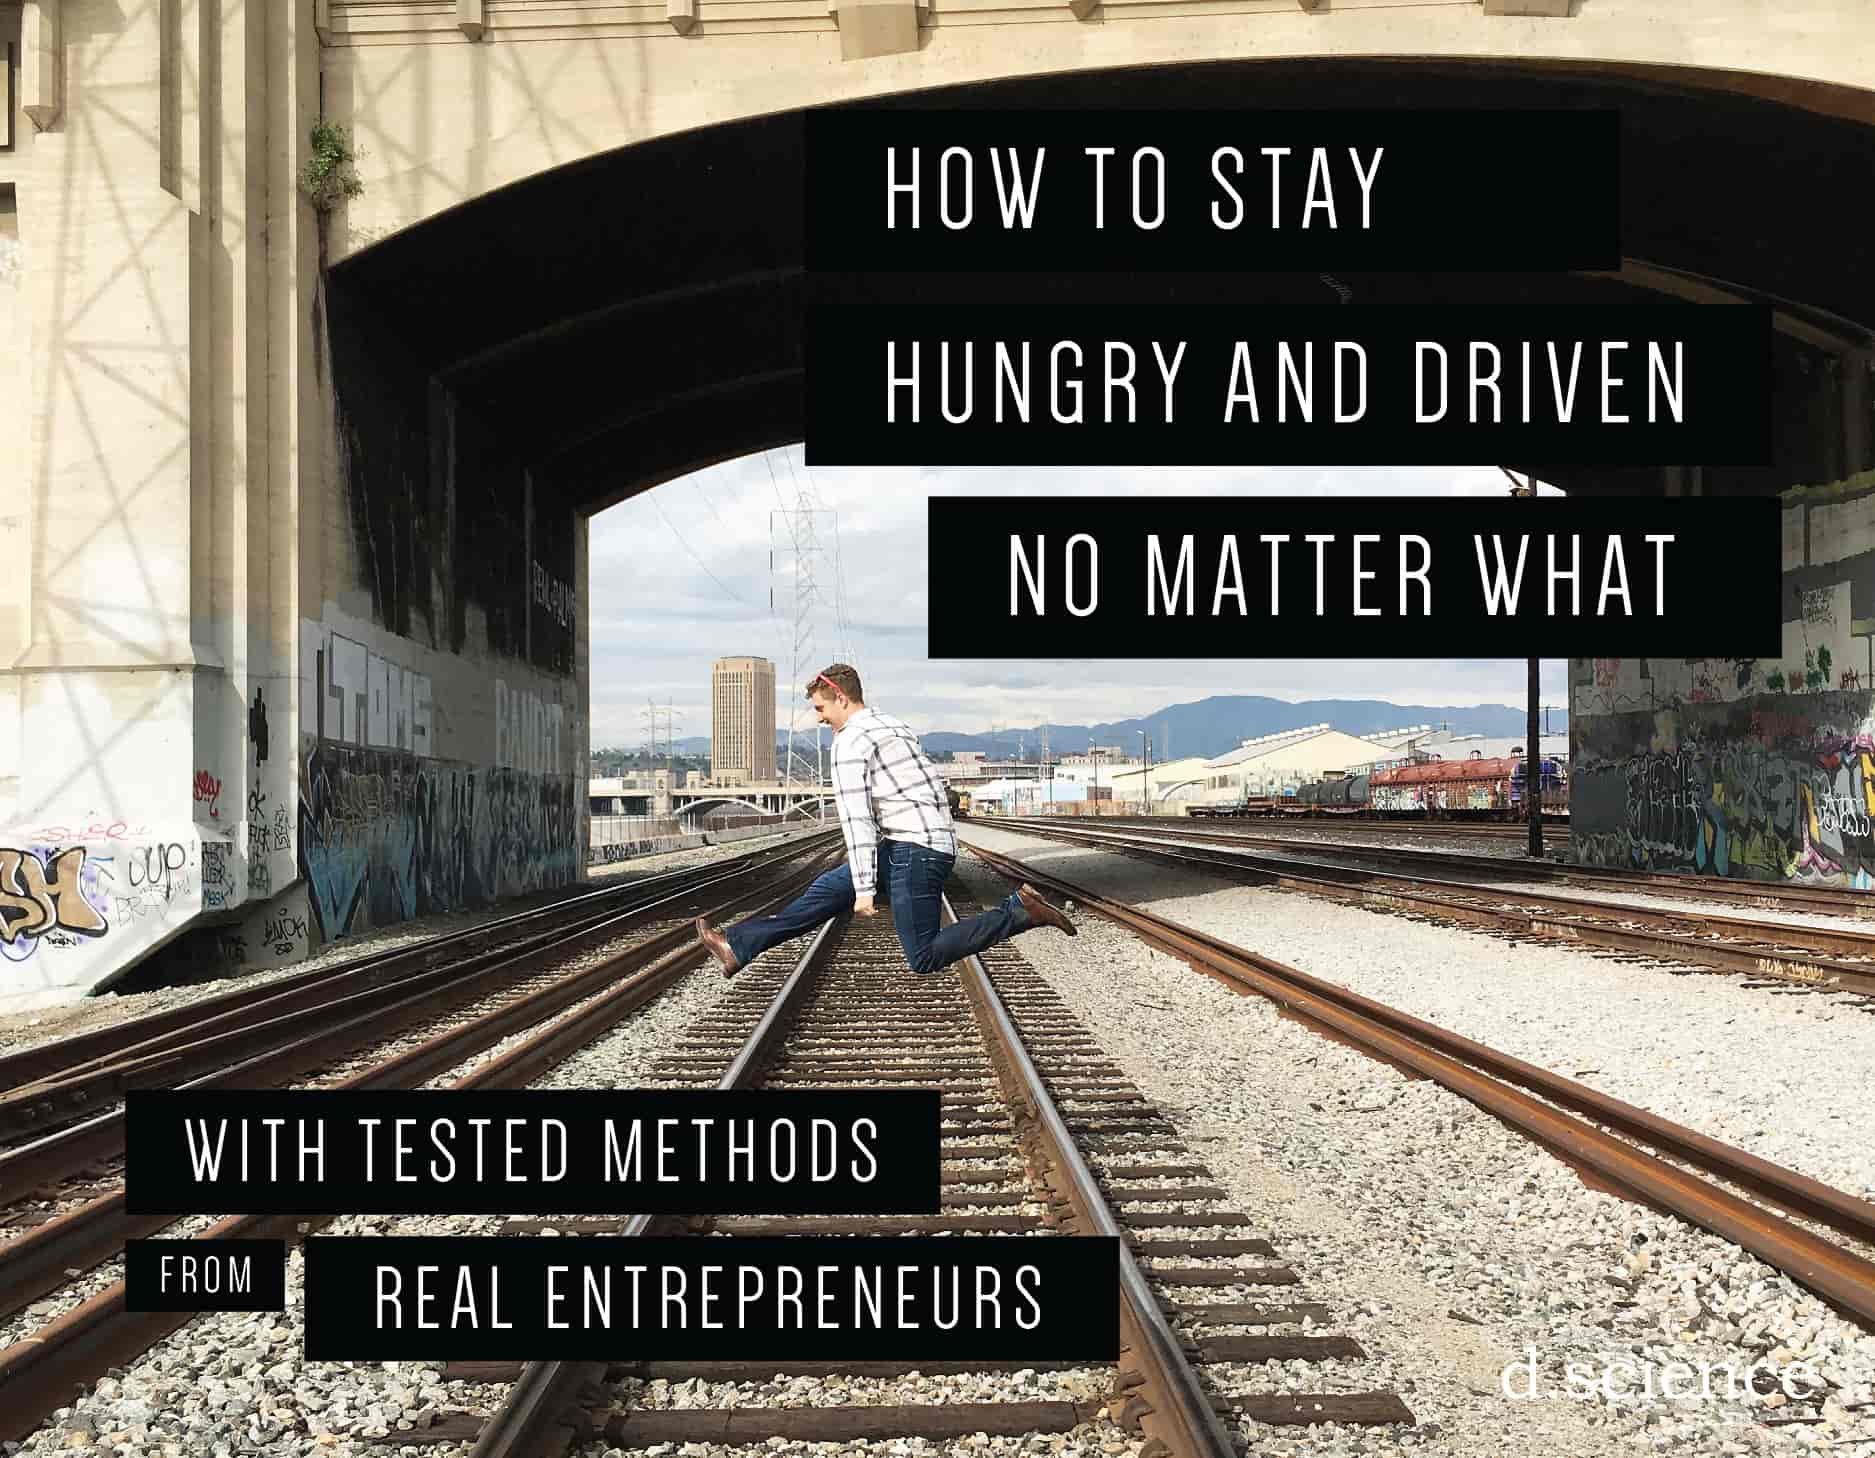 how to stay hungry and driven no matter what